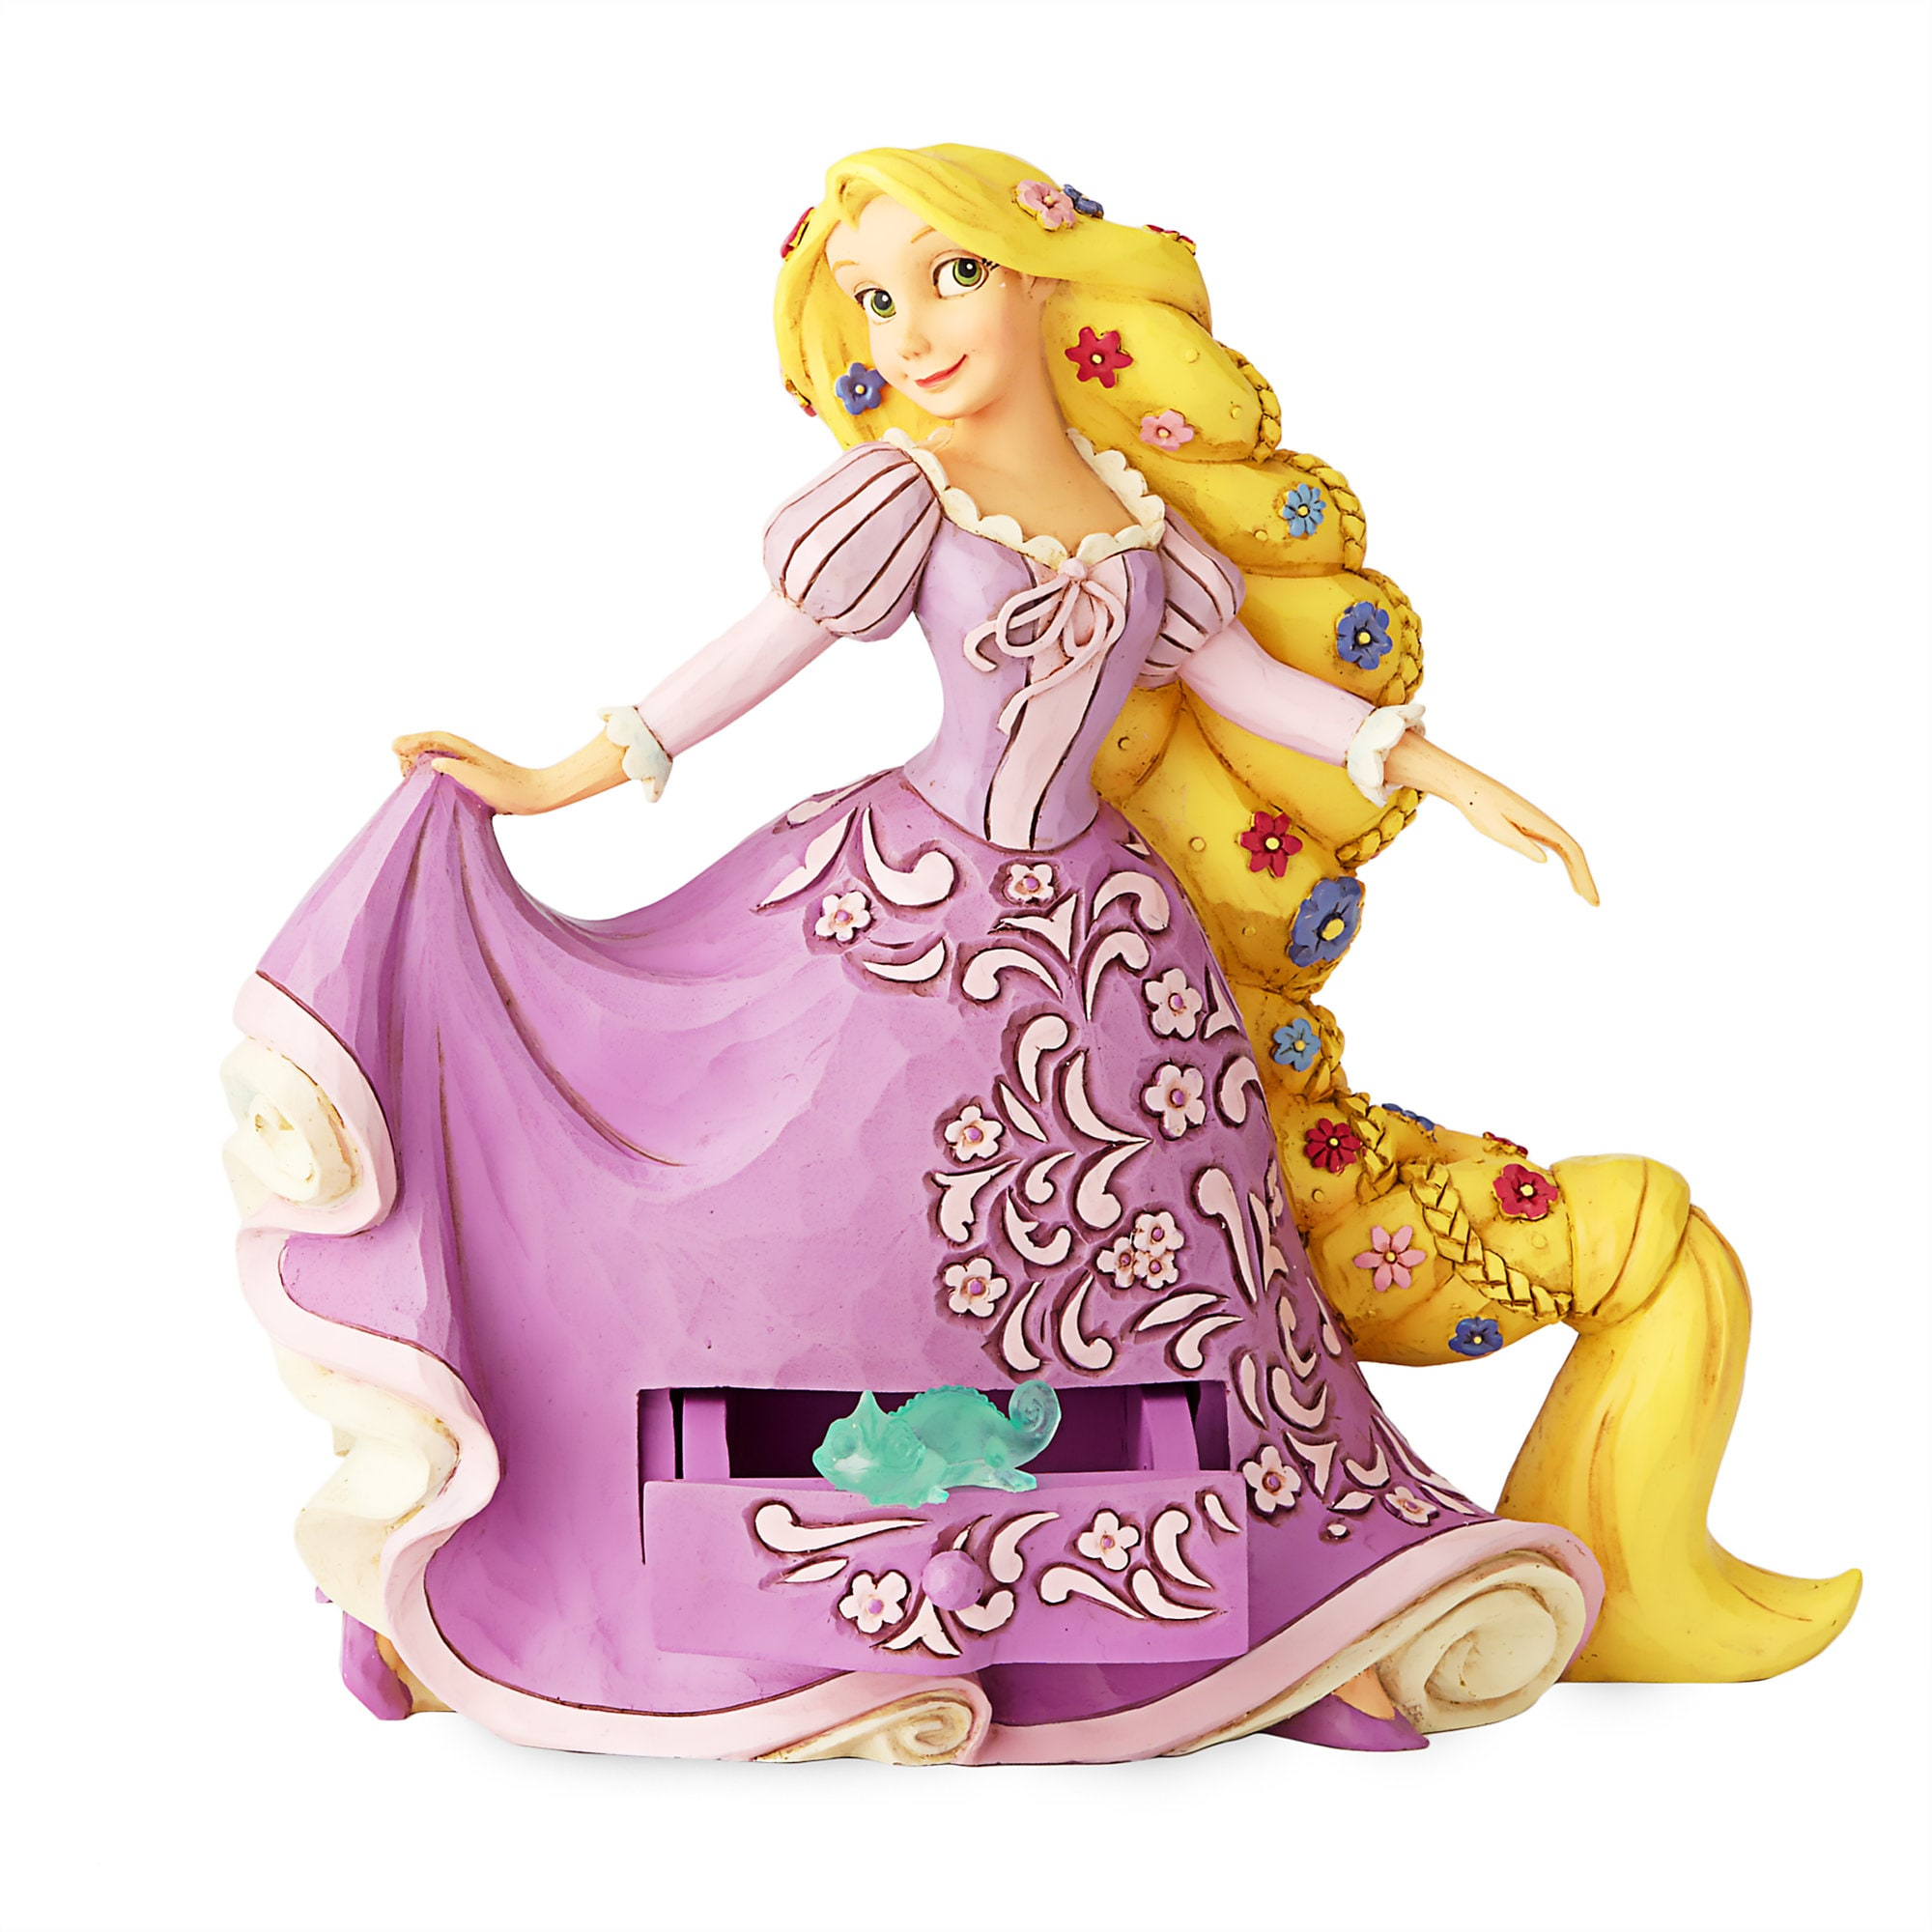 Rapunzel ''Rapunzel's Secret Charm'' Figure by Jim Shore